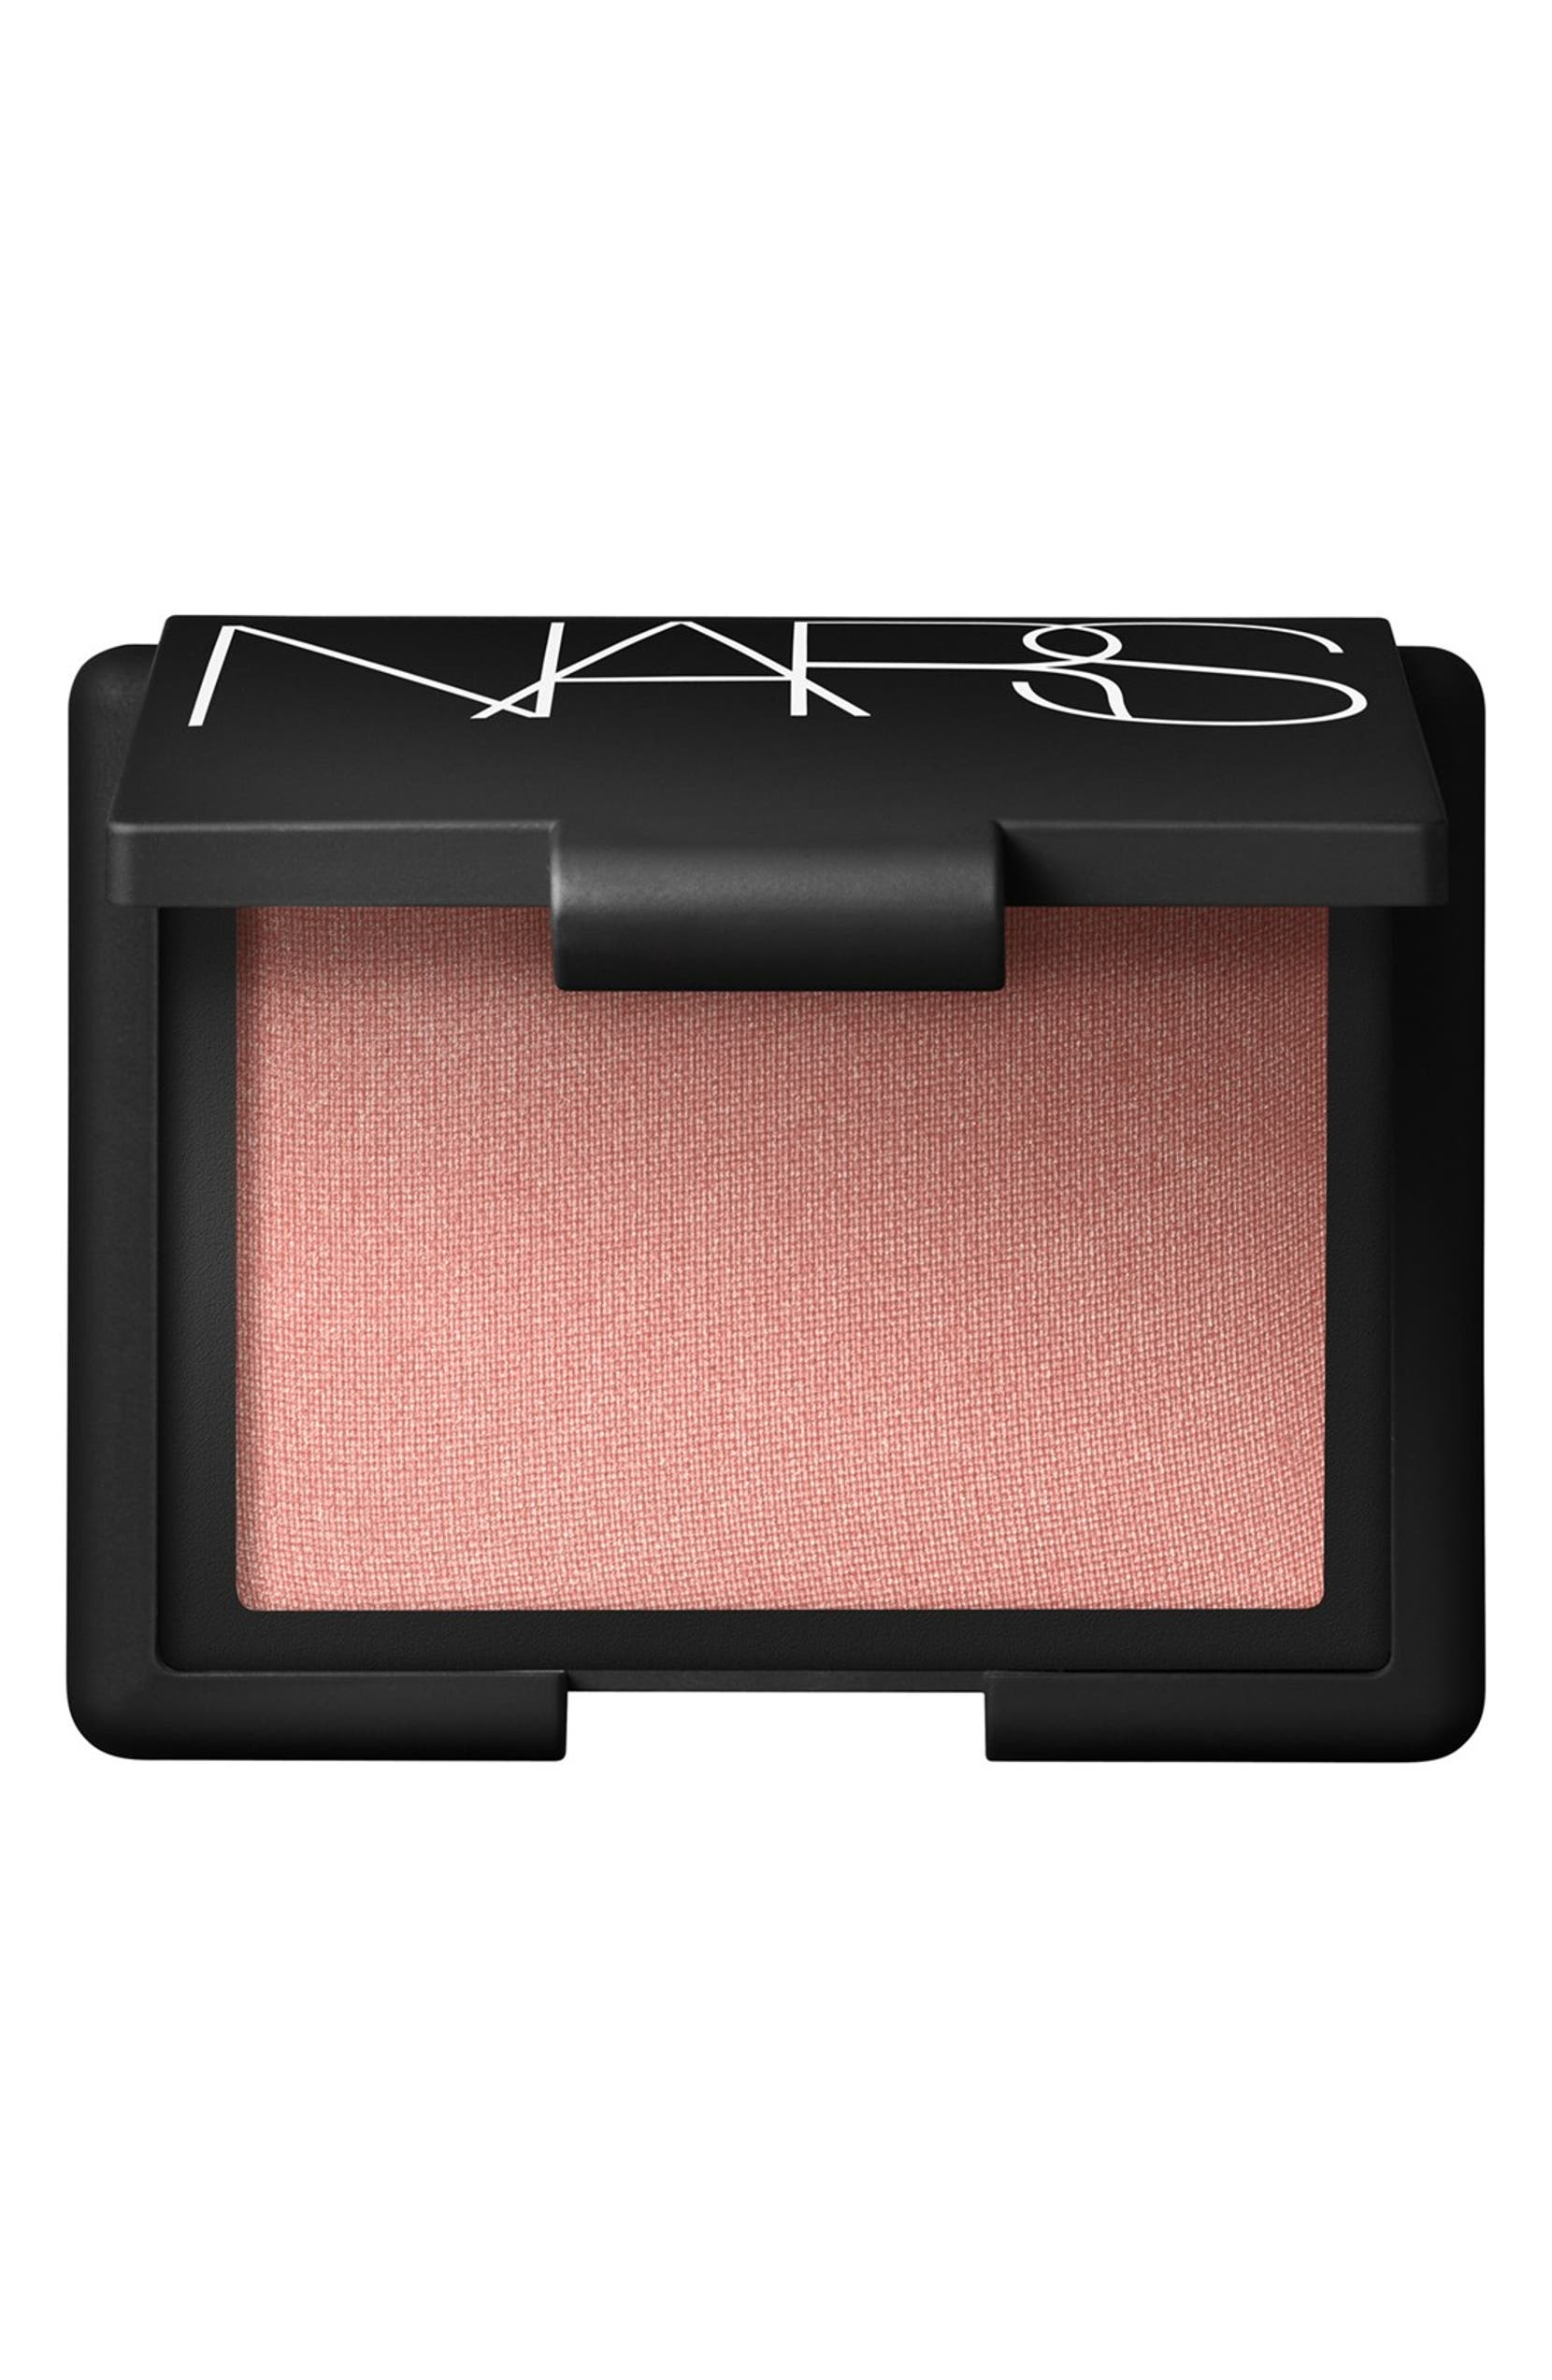 Blush & Brighten Face Palette by the vintage cosmetic company #12